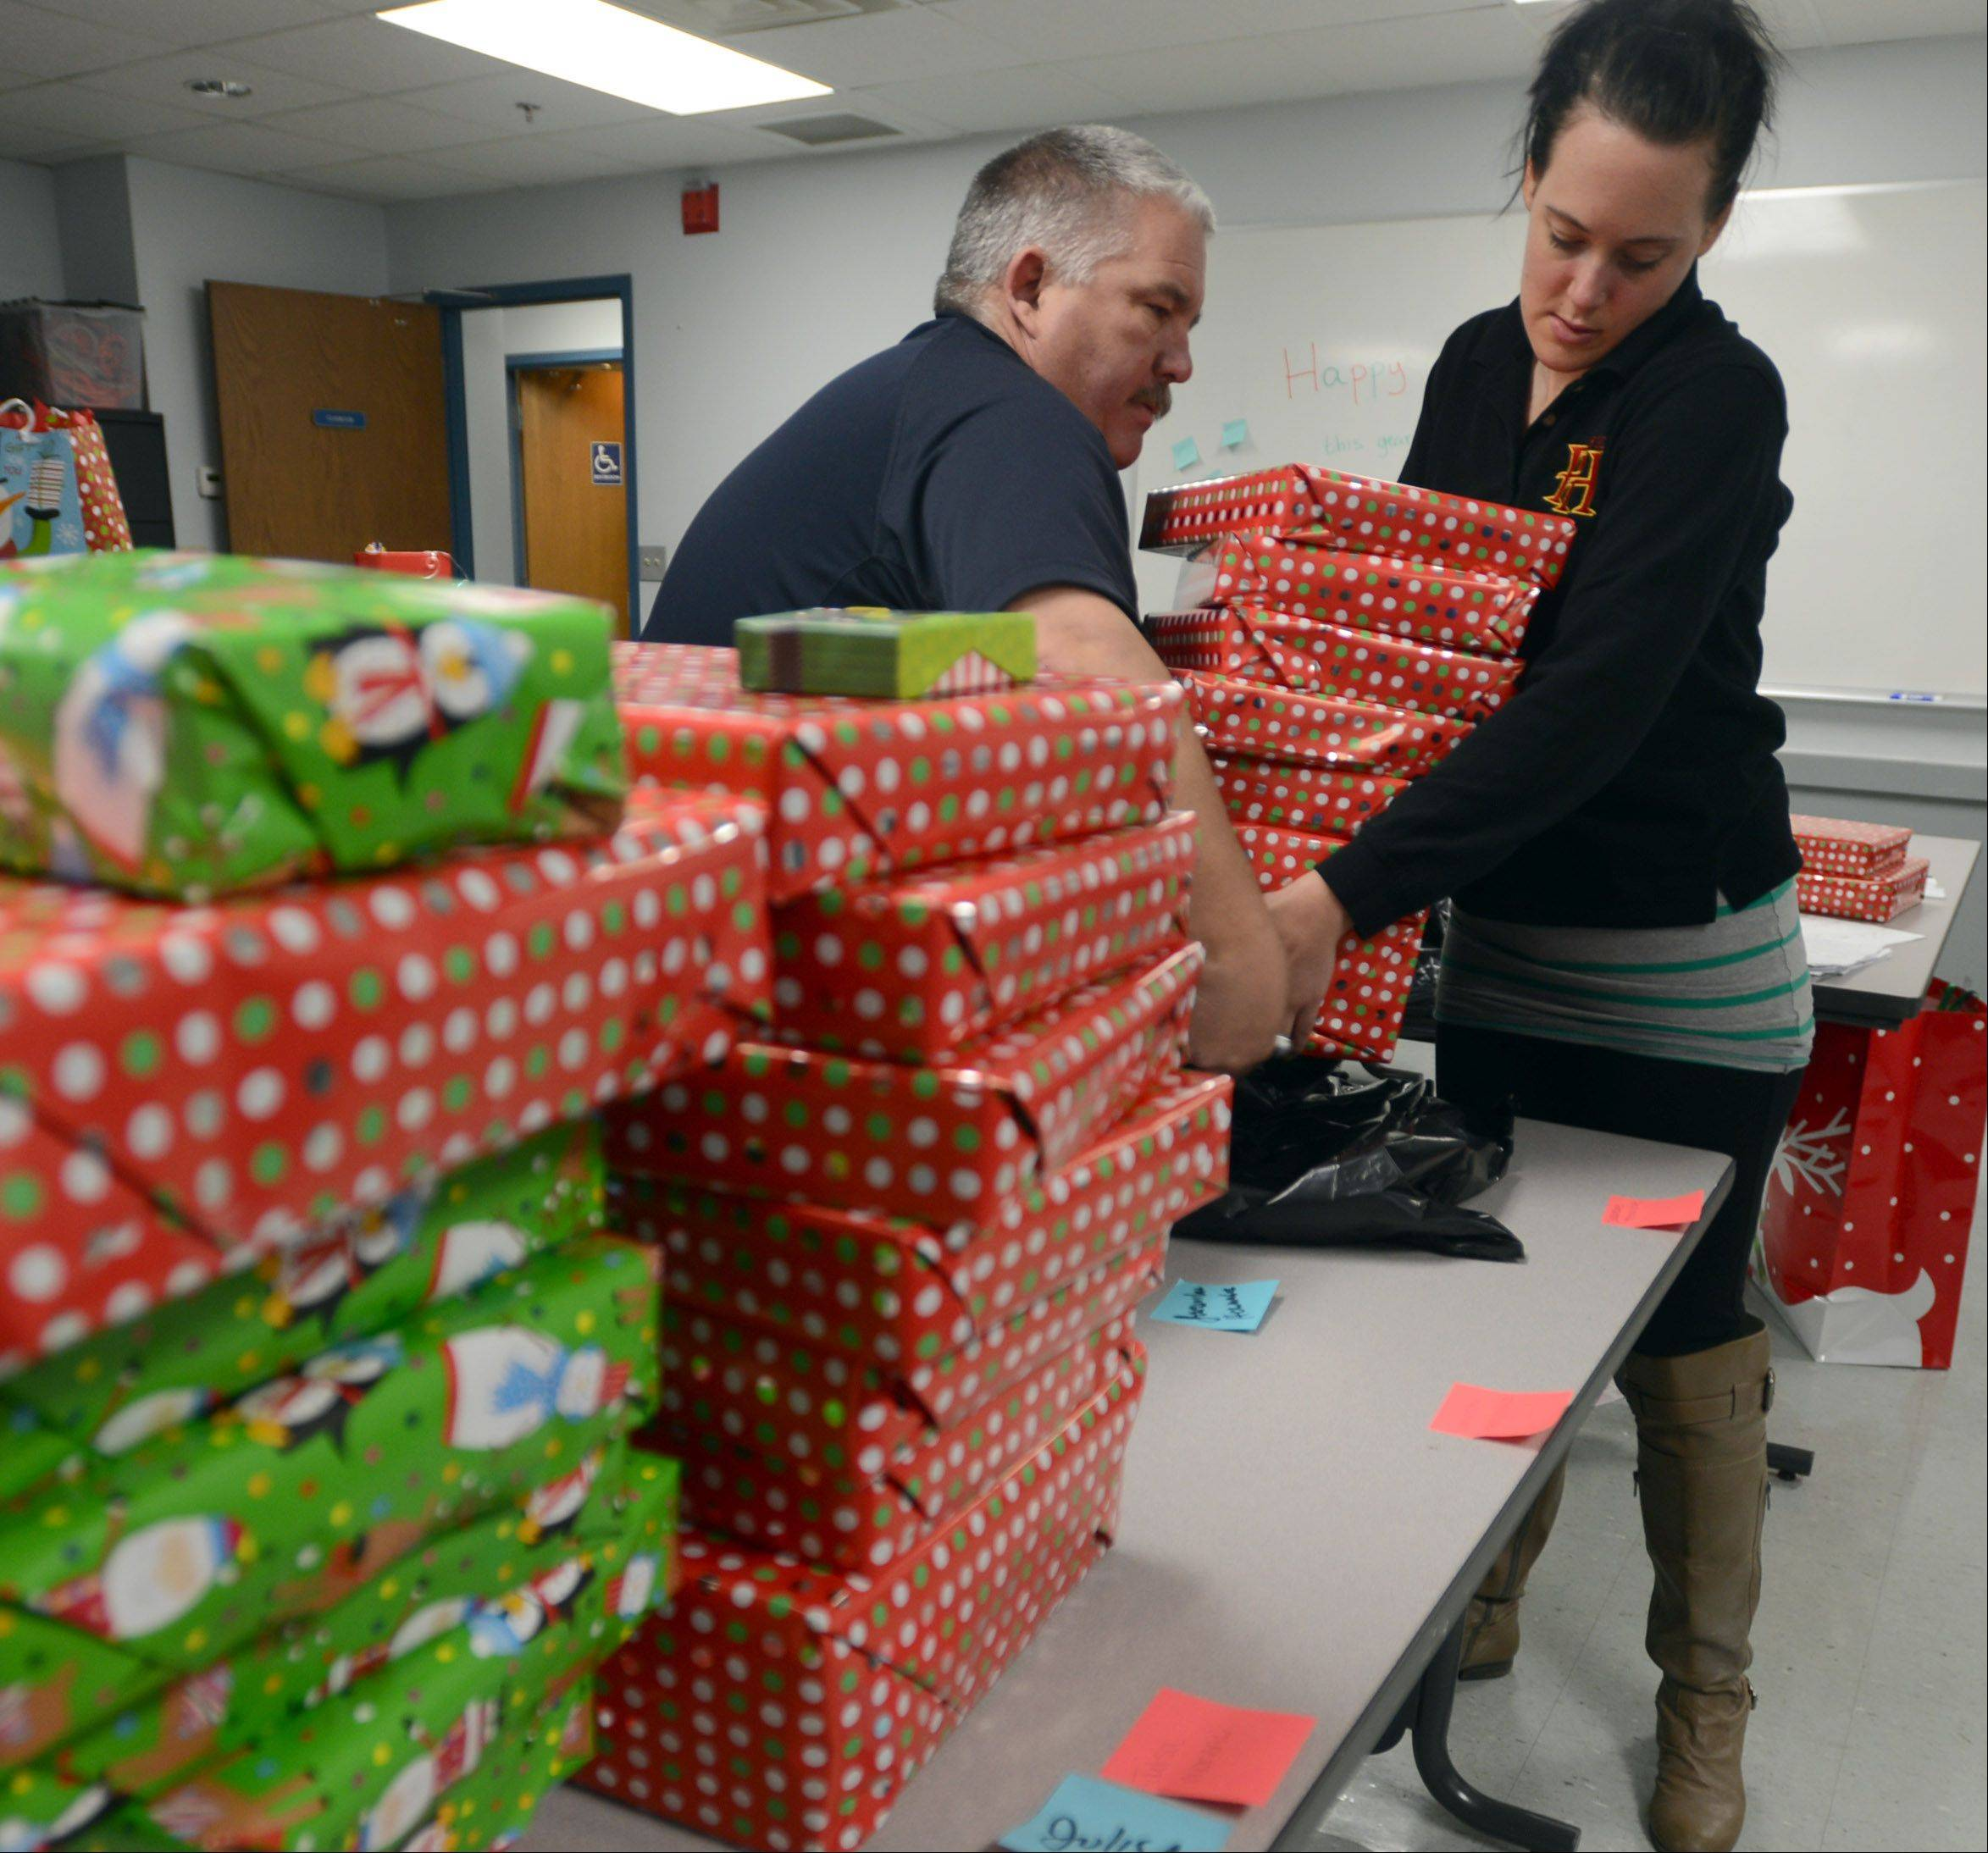 Prospect Heights Deputy Fire Chief Timothy Jones, left, and administrative assistant Lauren Clausen load Christmas gifts for delivery on Monday afternoon.